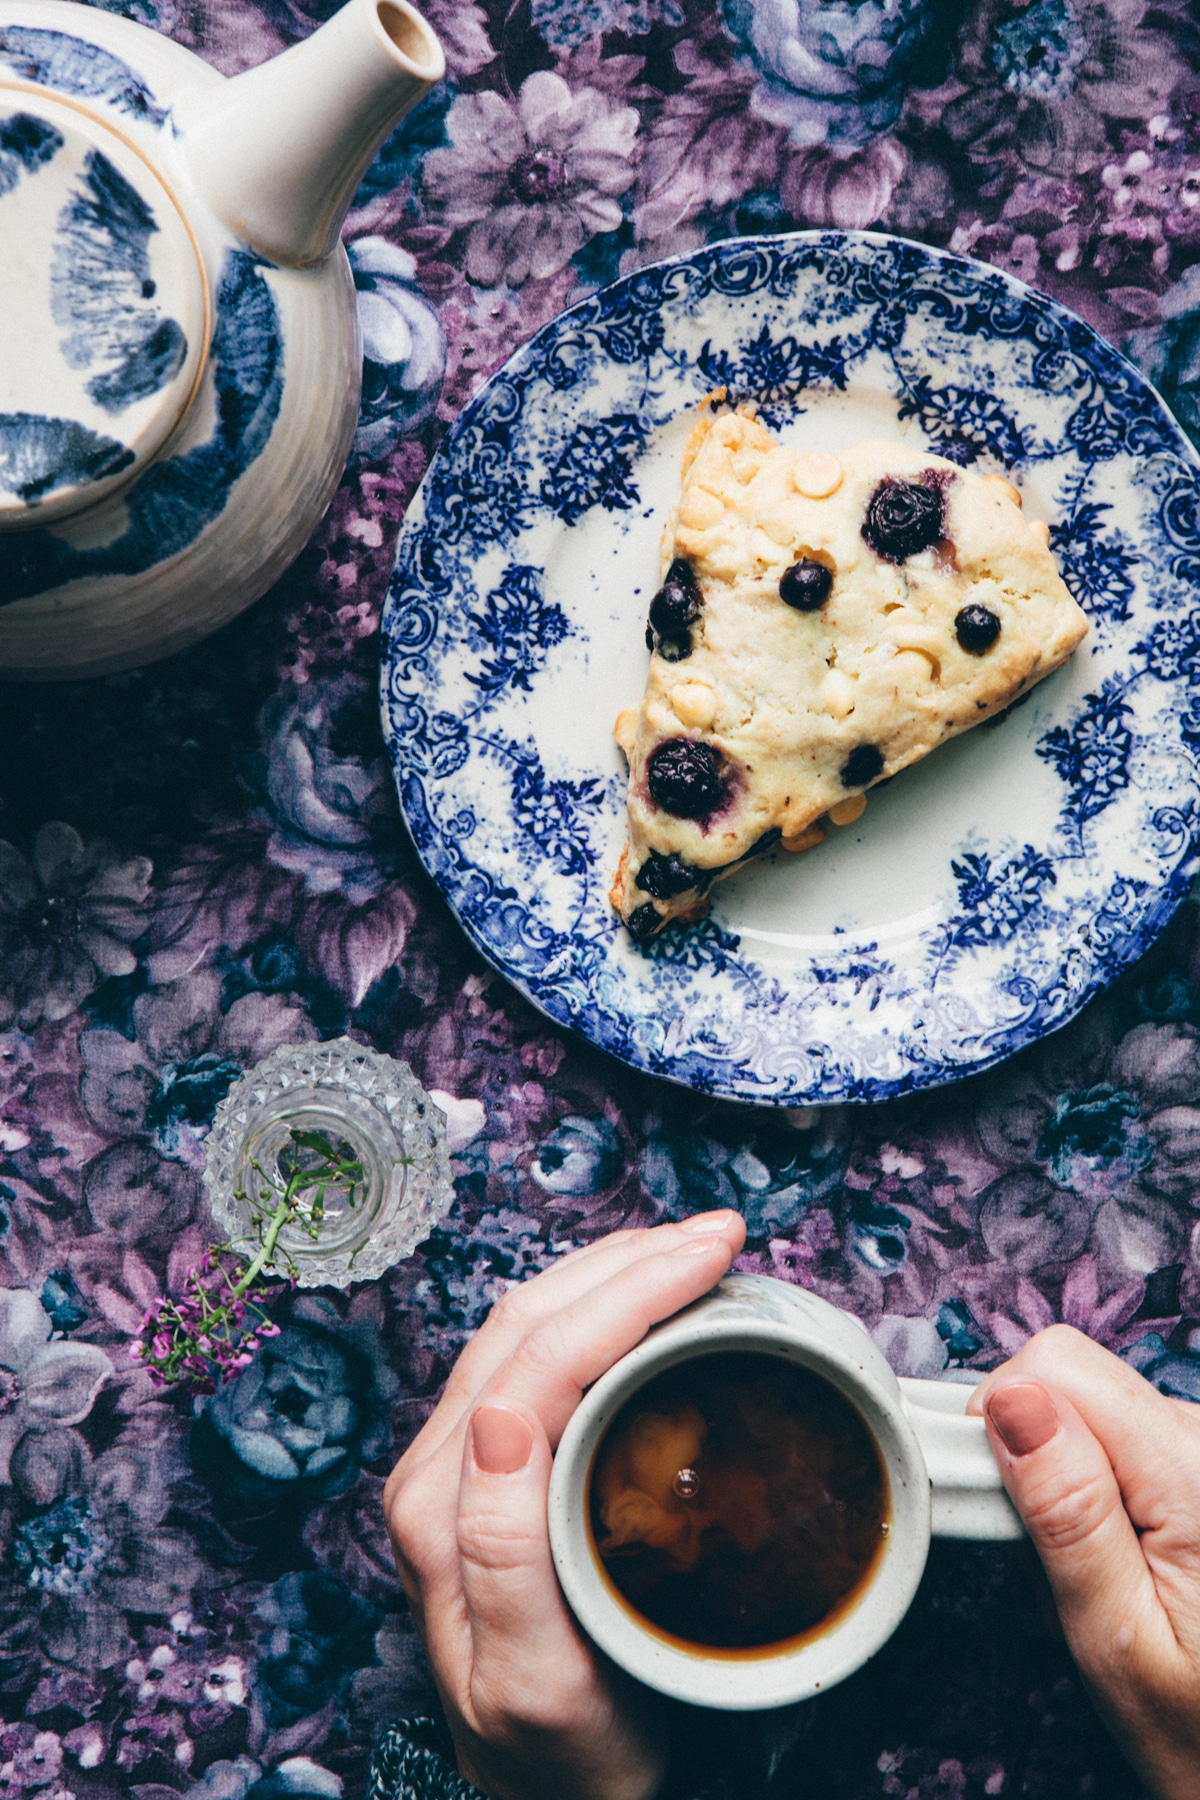 Hands holding a mug of tea next to a plate with a blueberry white chocolate scones.